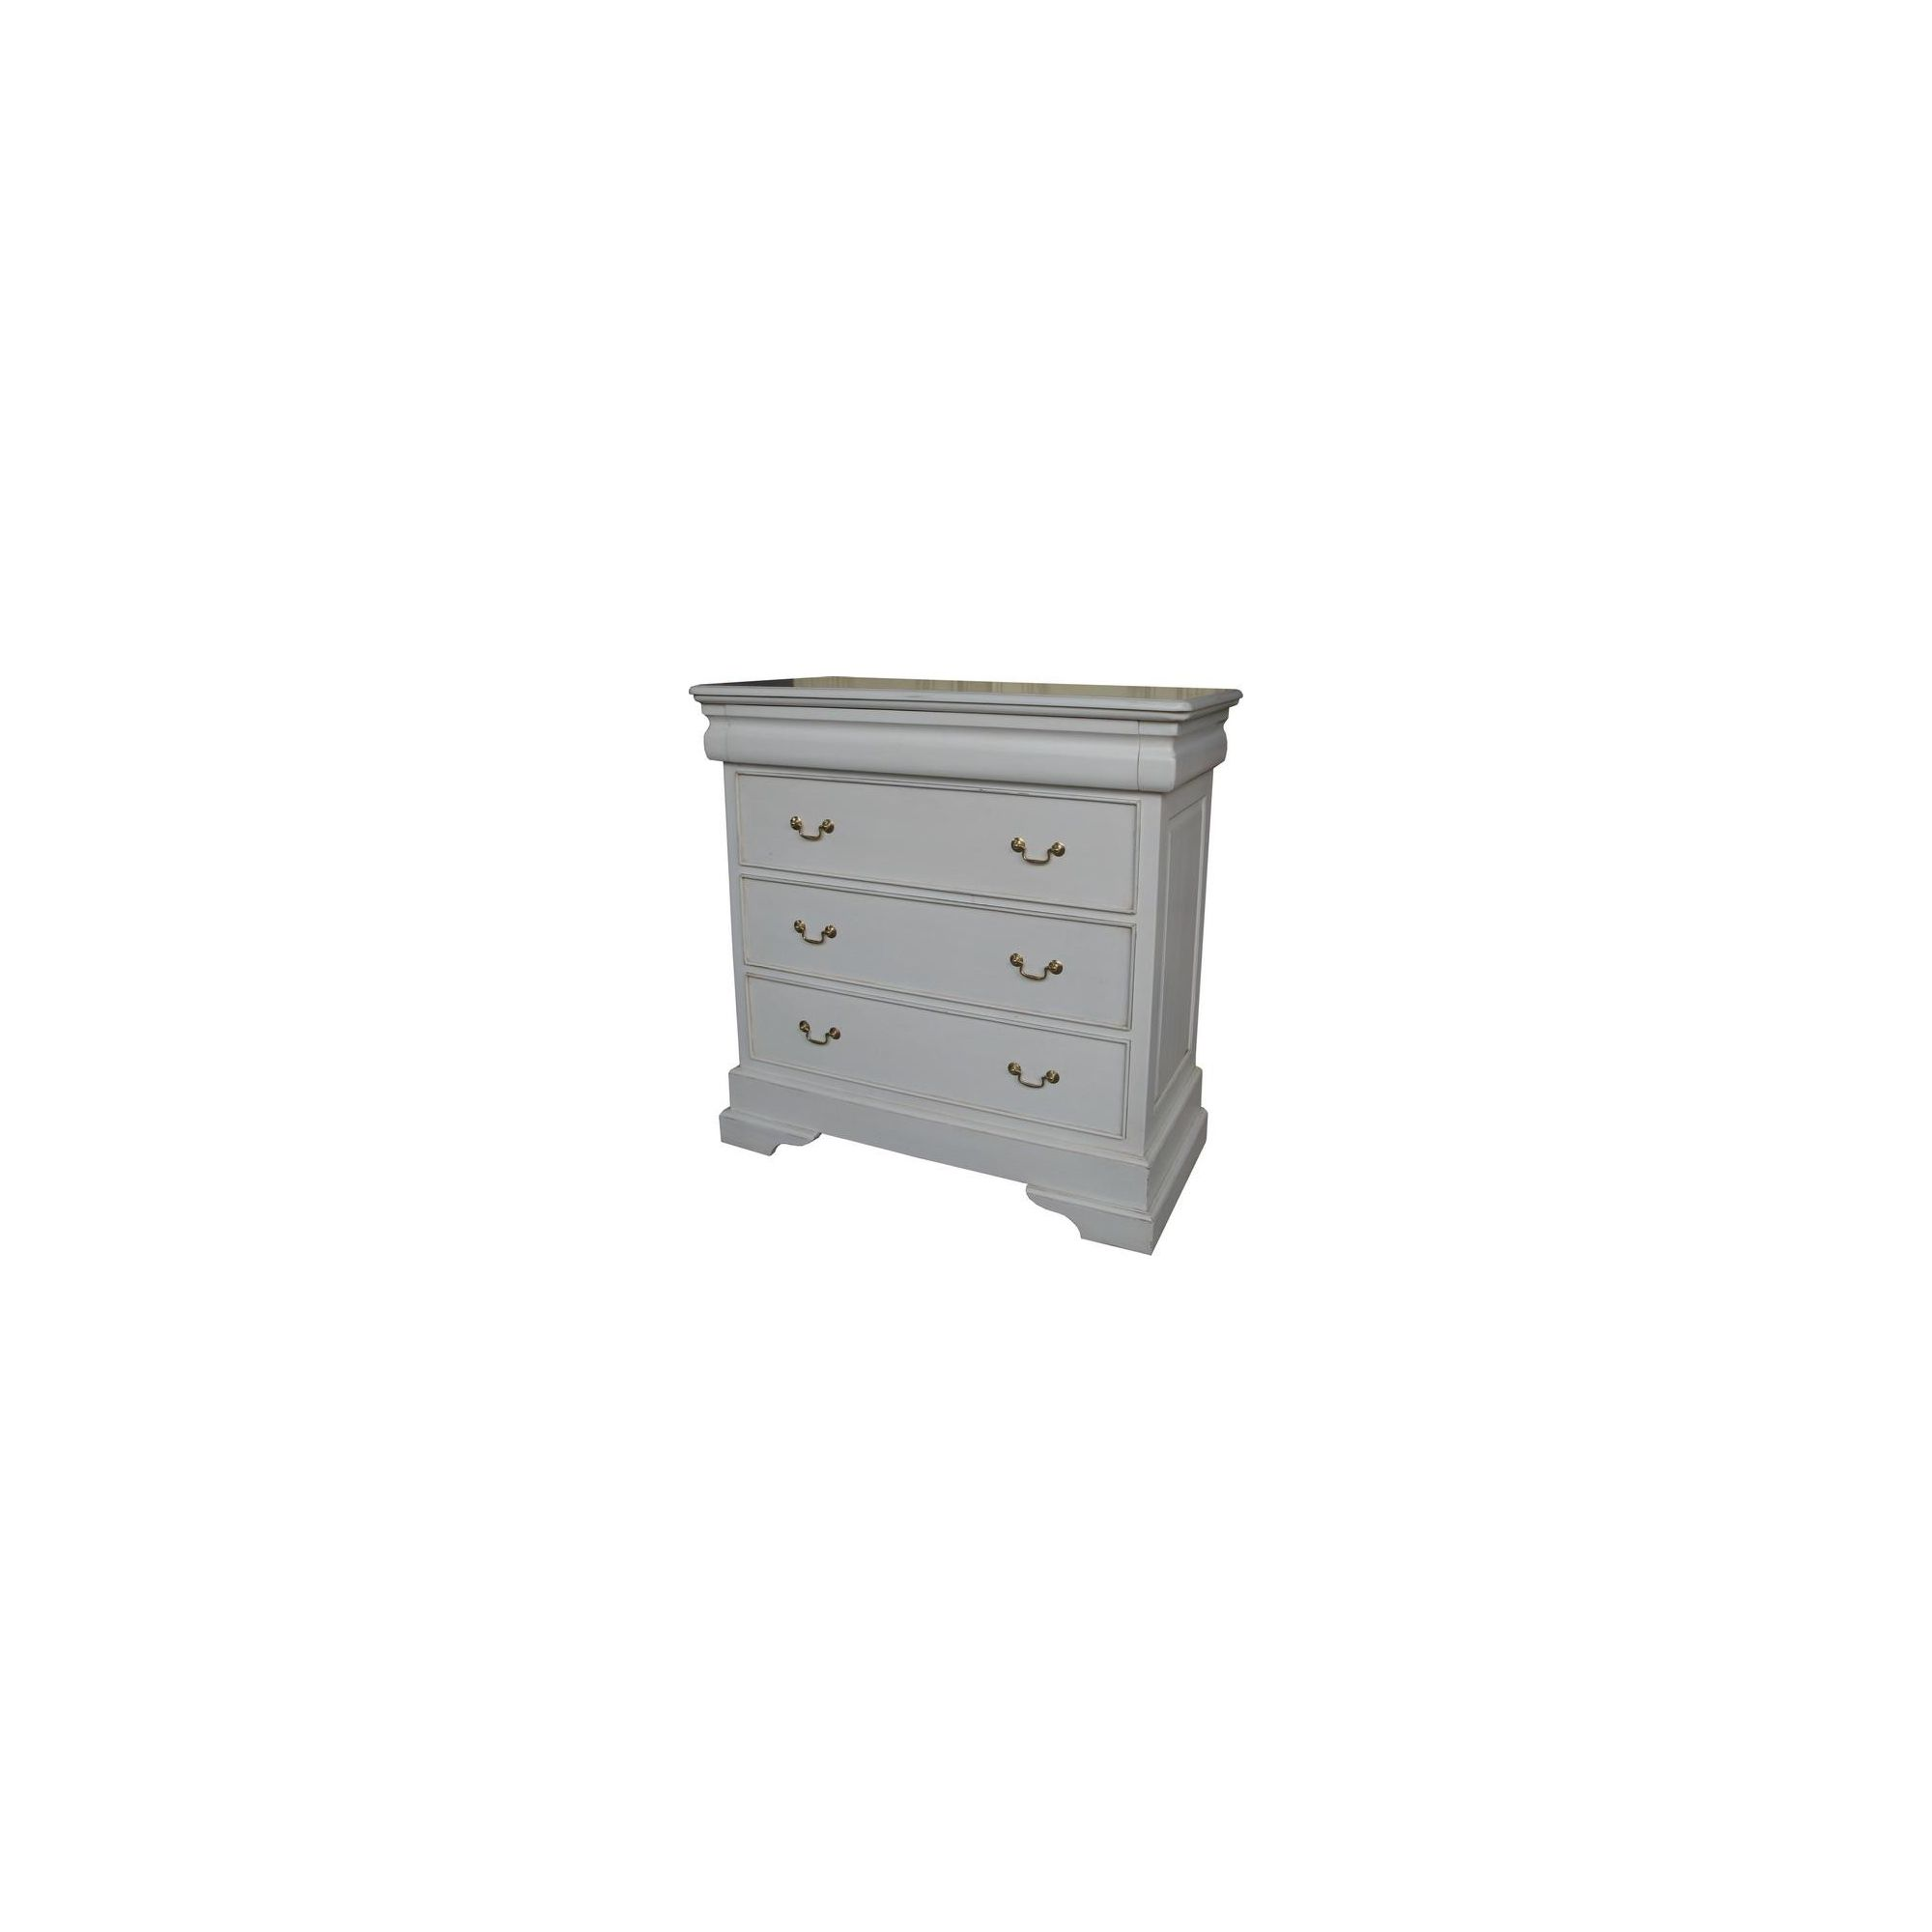 Lock stock and barrel Mahogany 3 Drawer Sleigh Chest - Antique White at Tescos Direct